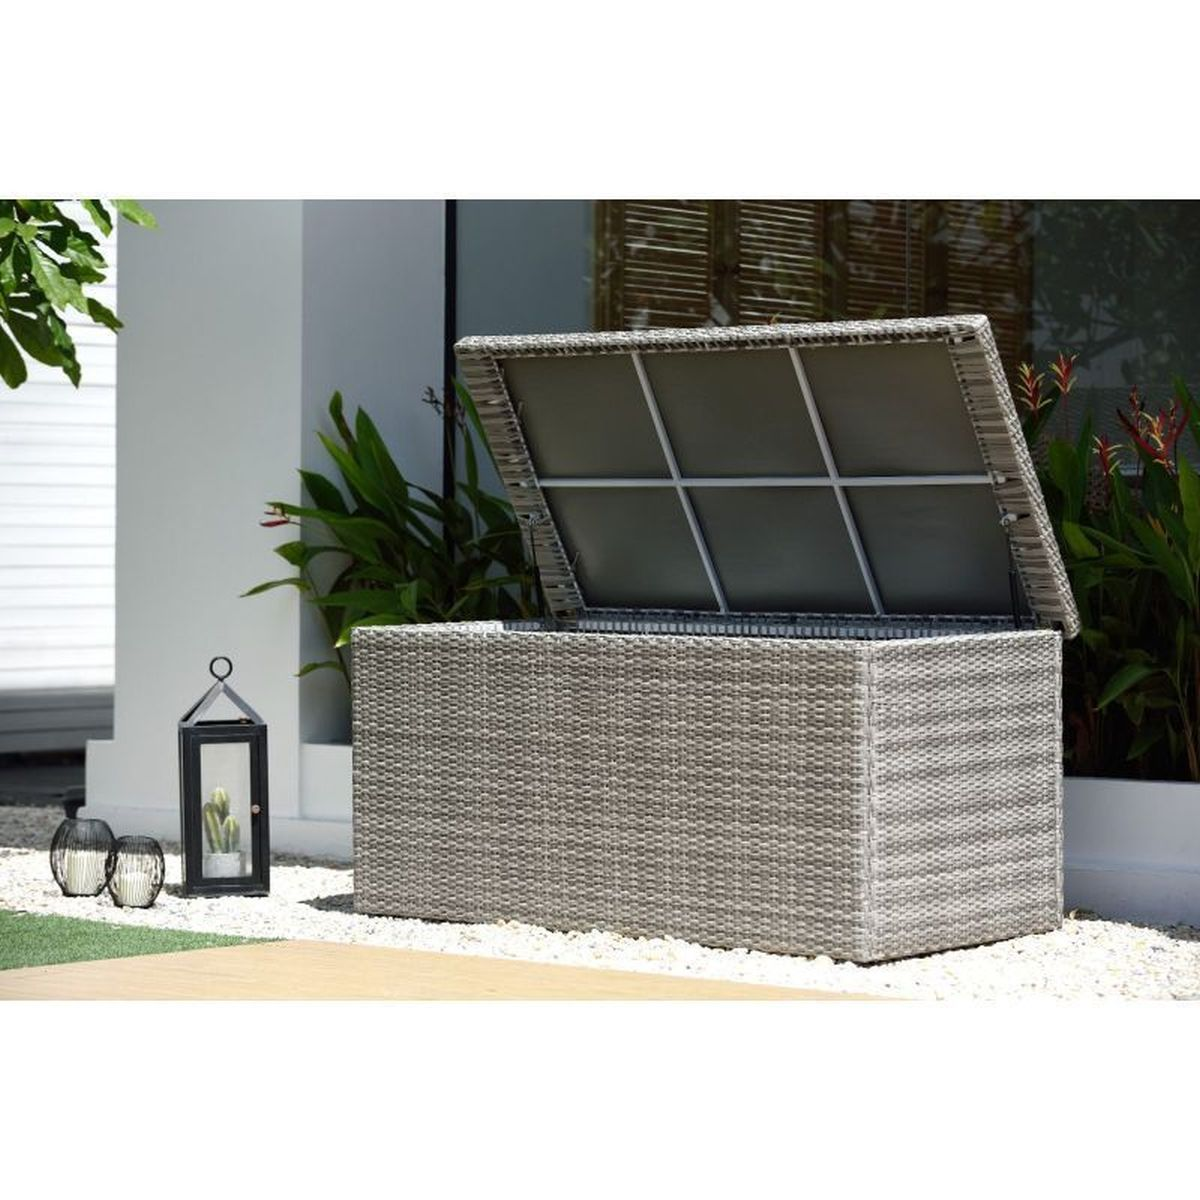 LifestyleGarden Aruba Cushion Box | Local Delivery Only